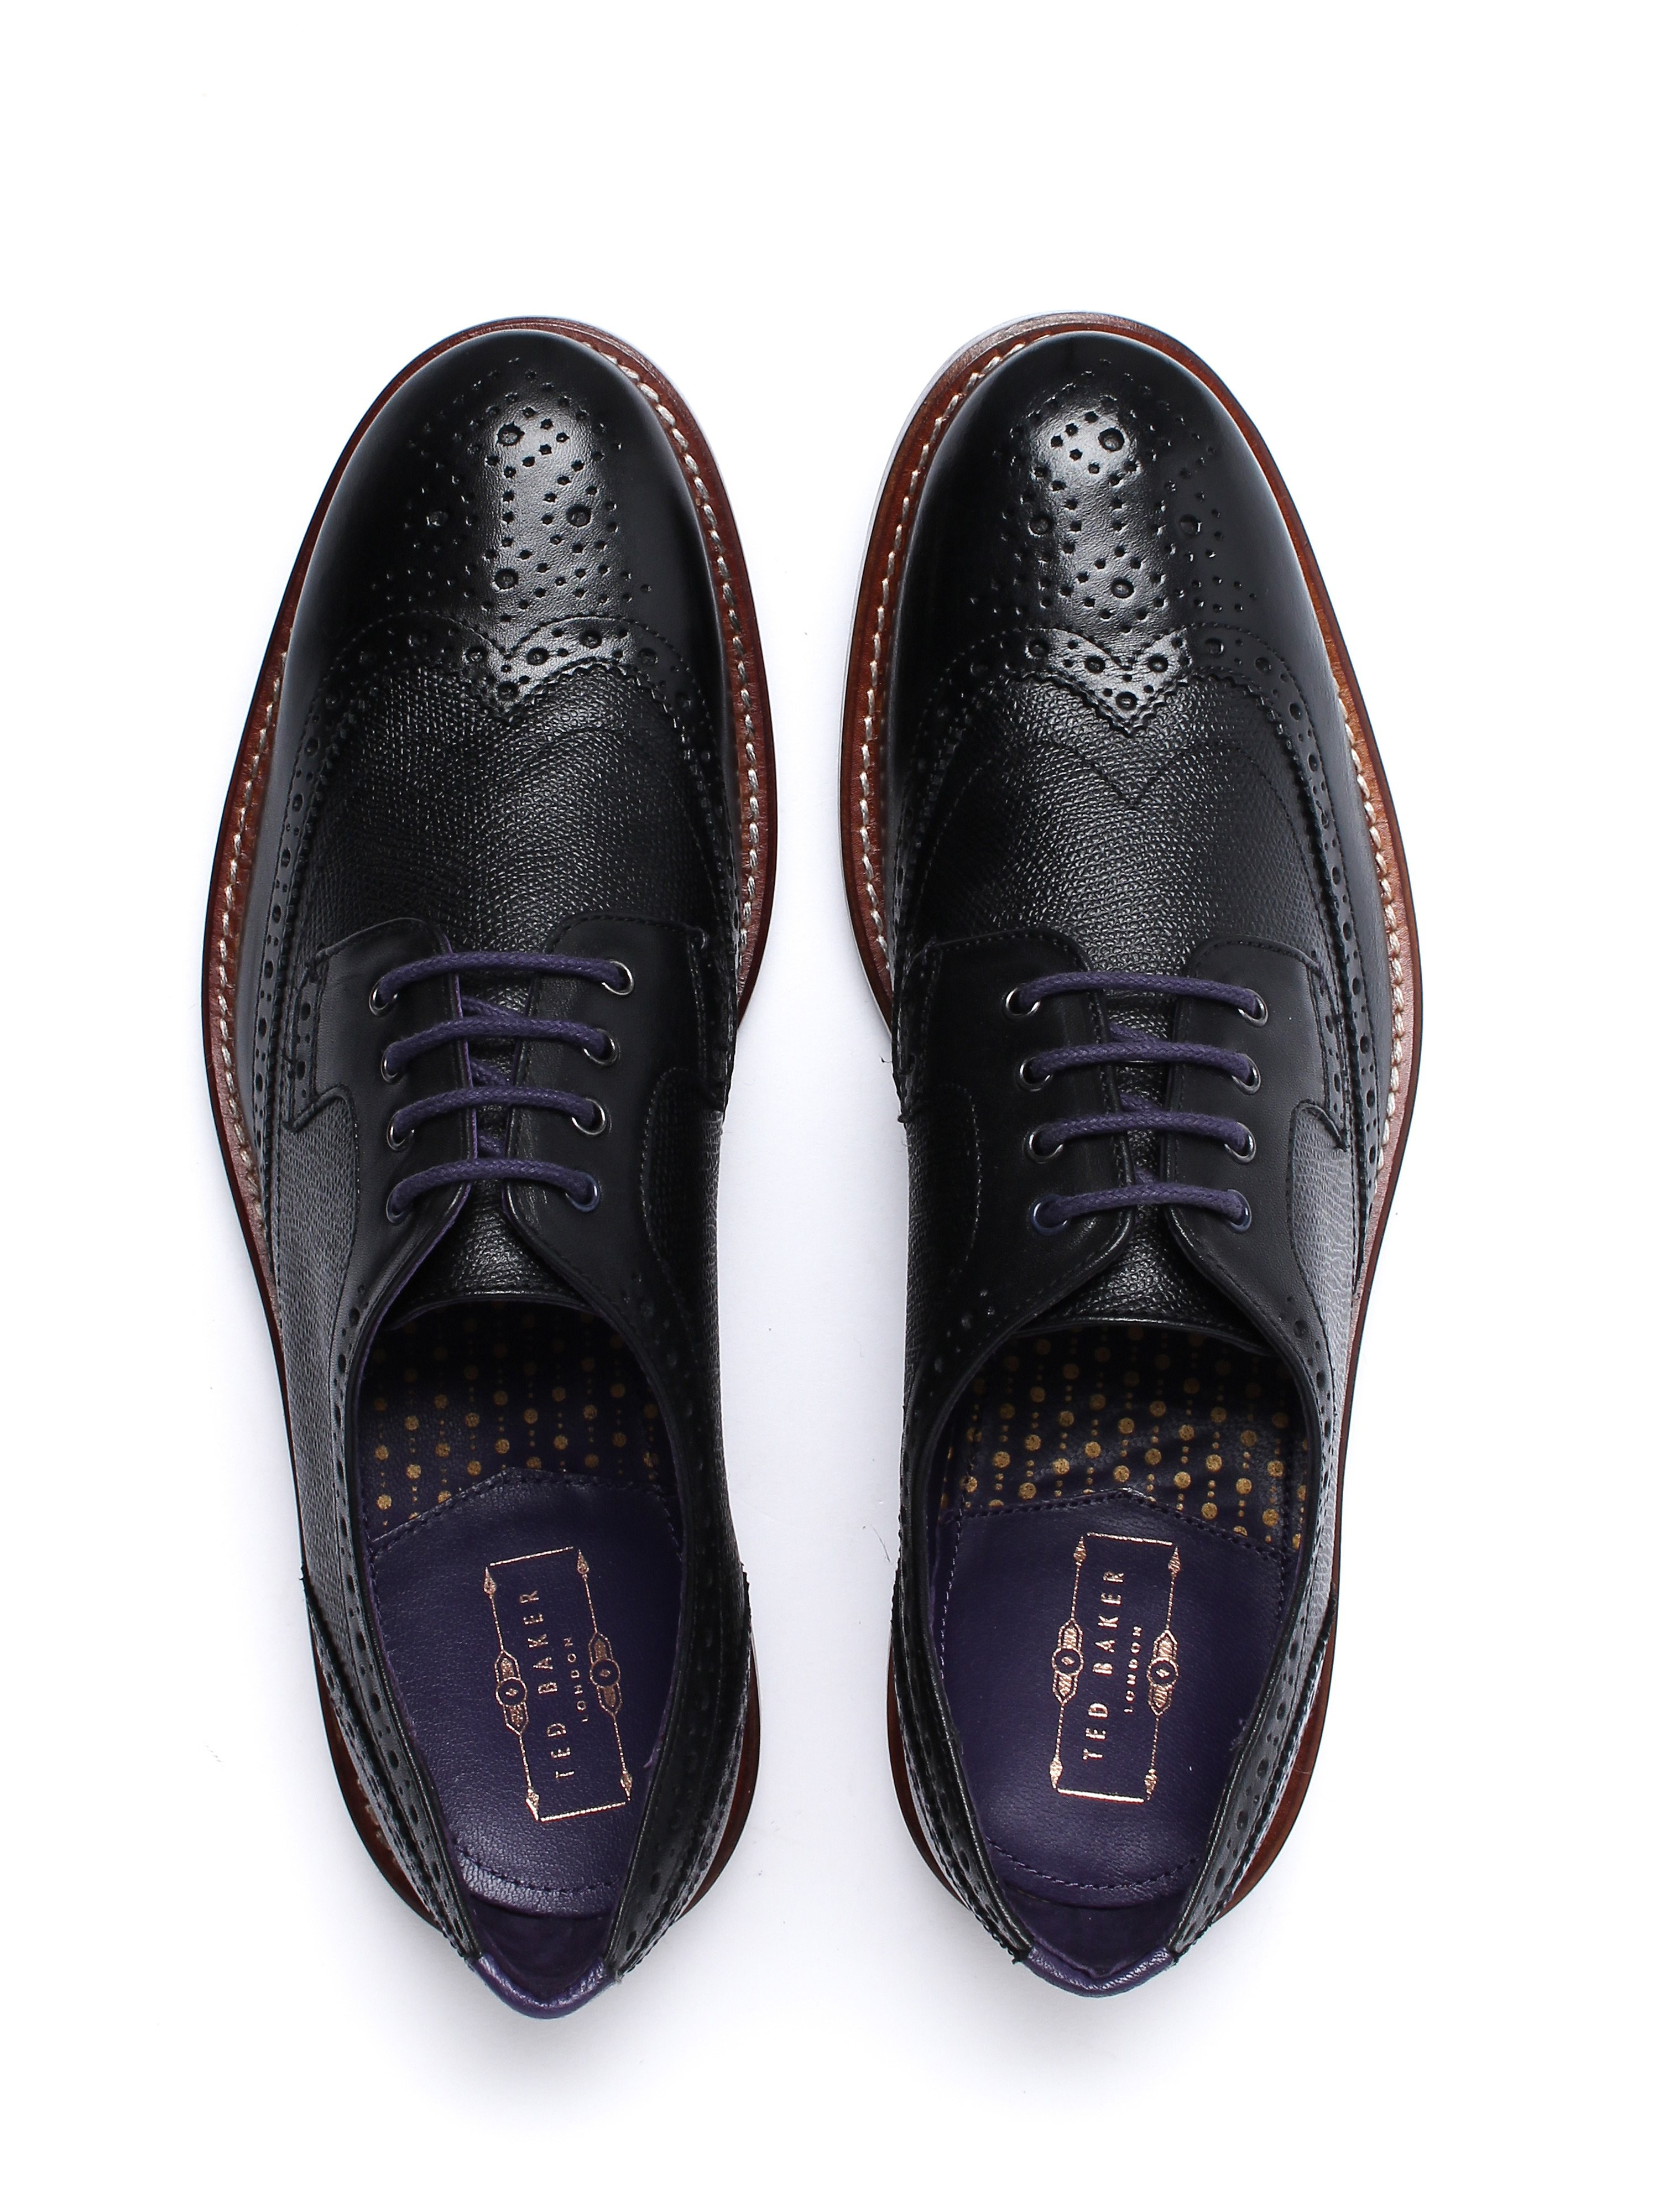 Ted Baker Men's Cassiuss 4 Derby Brogues - Black Leather